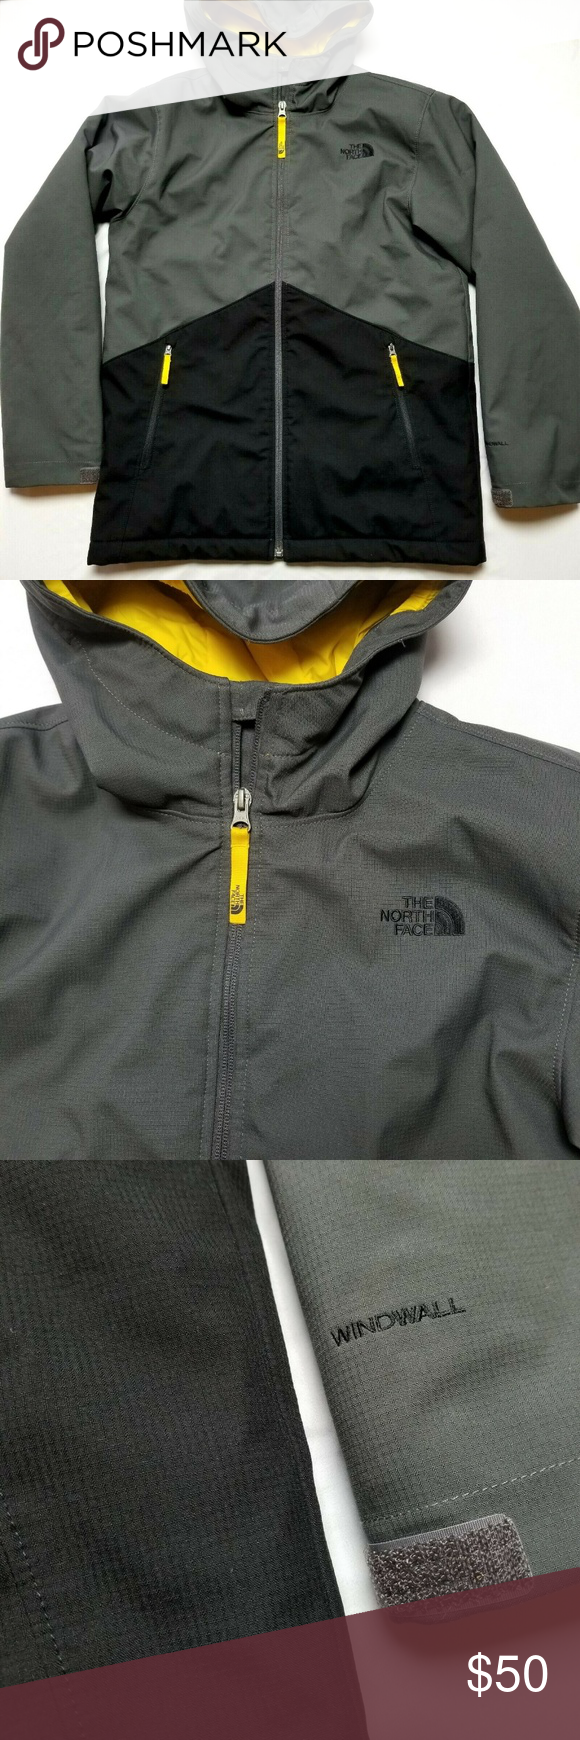 b746db66c The north face jacket boys large 14/16 windwall Mint condition, no ...